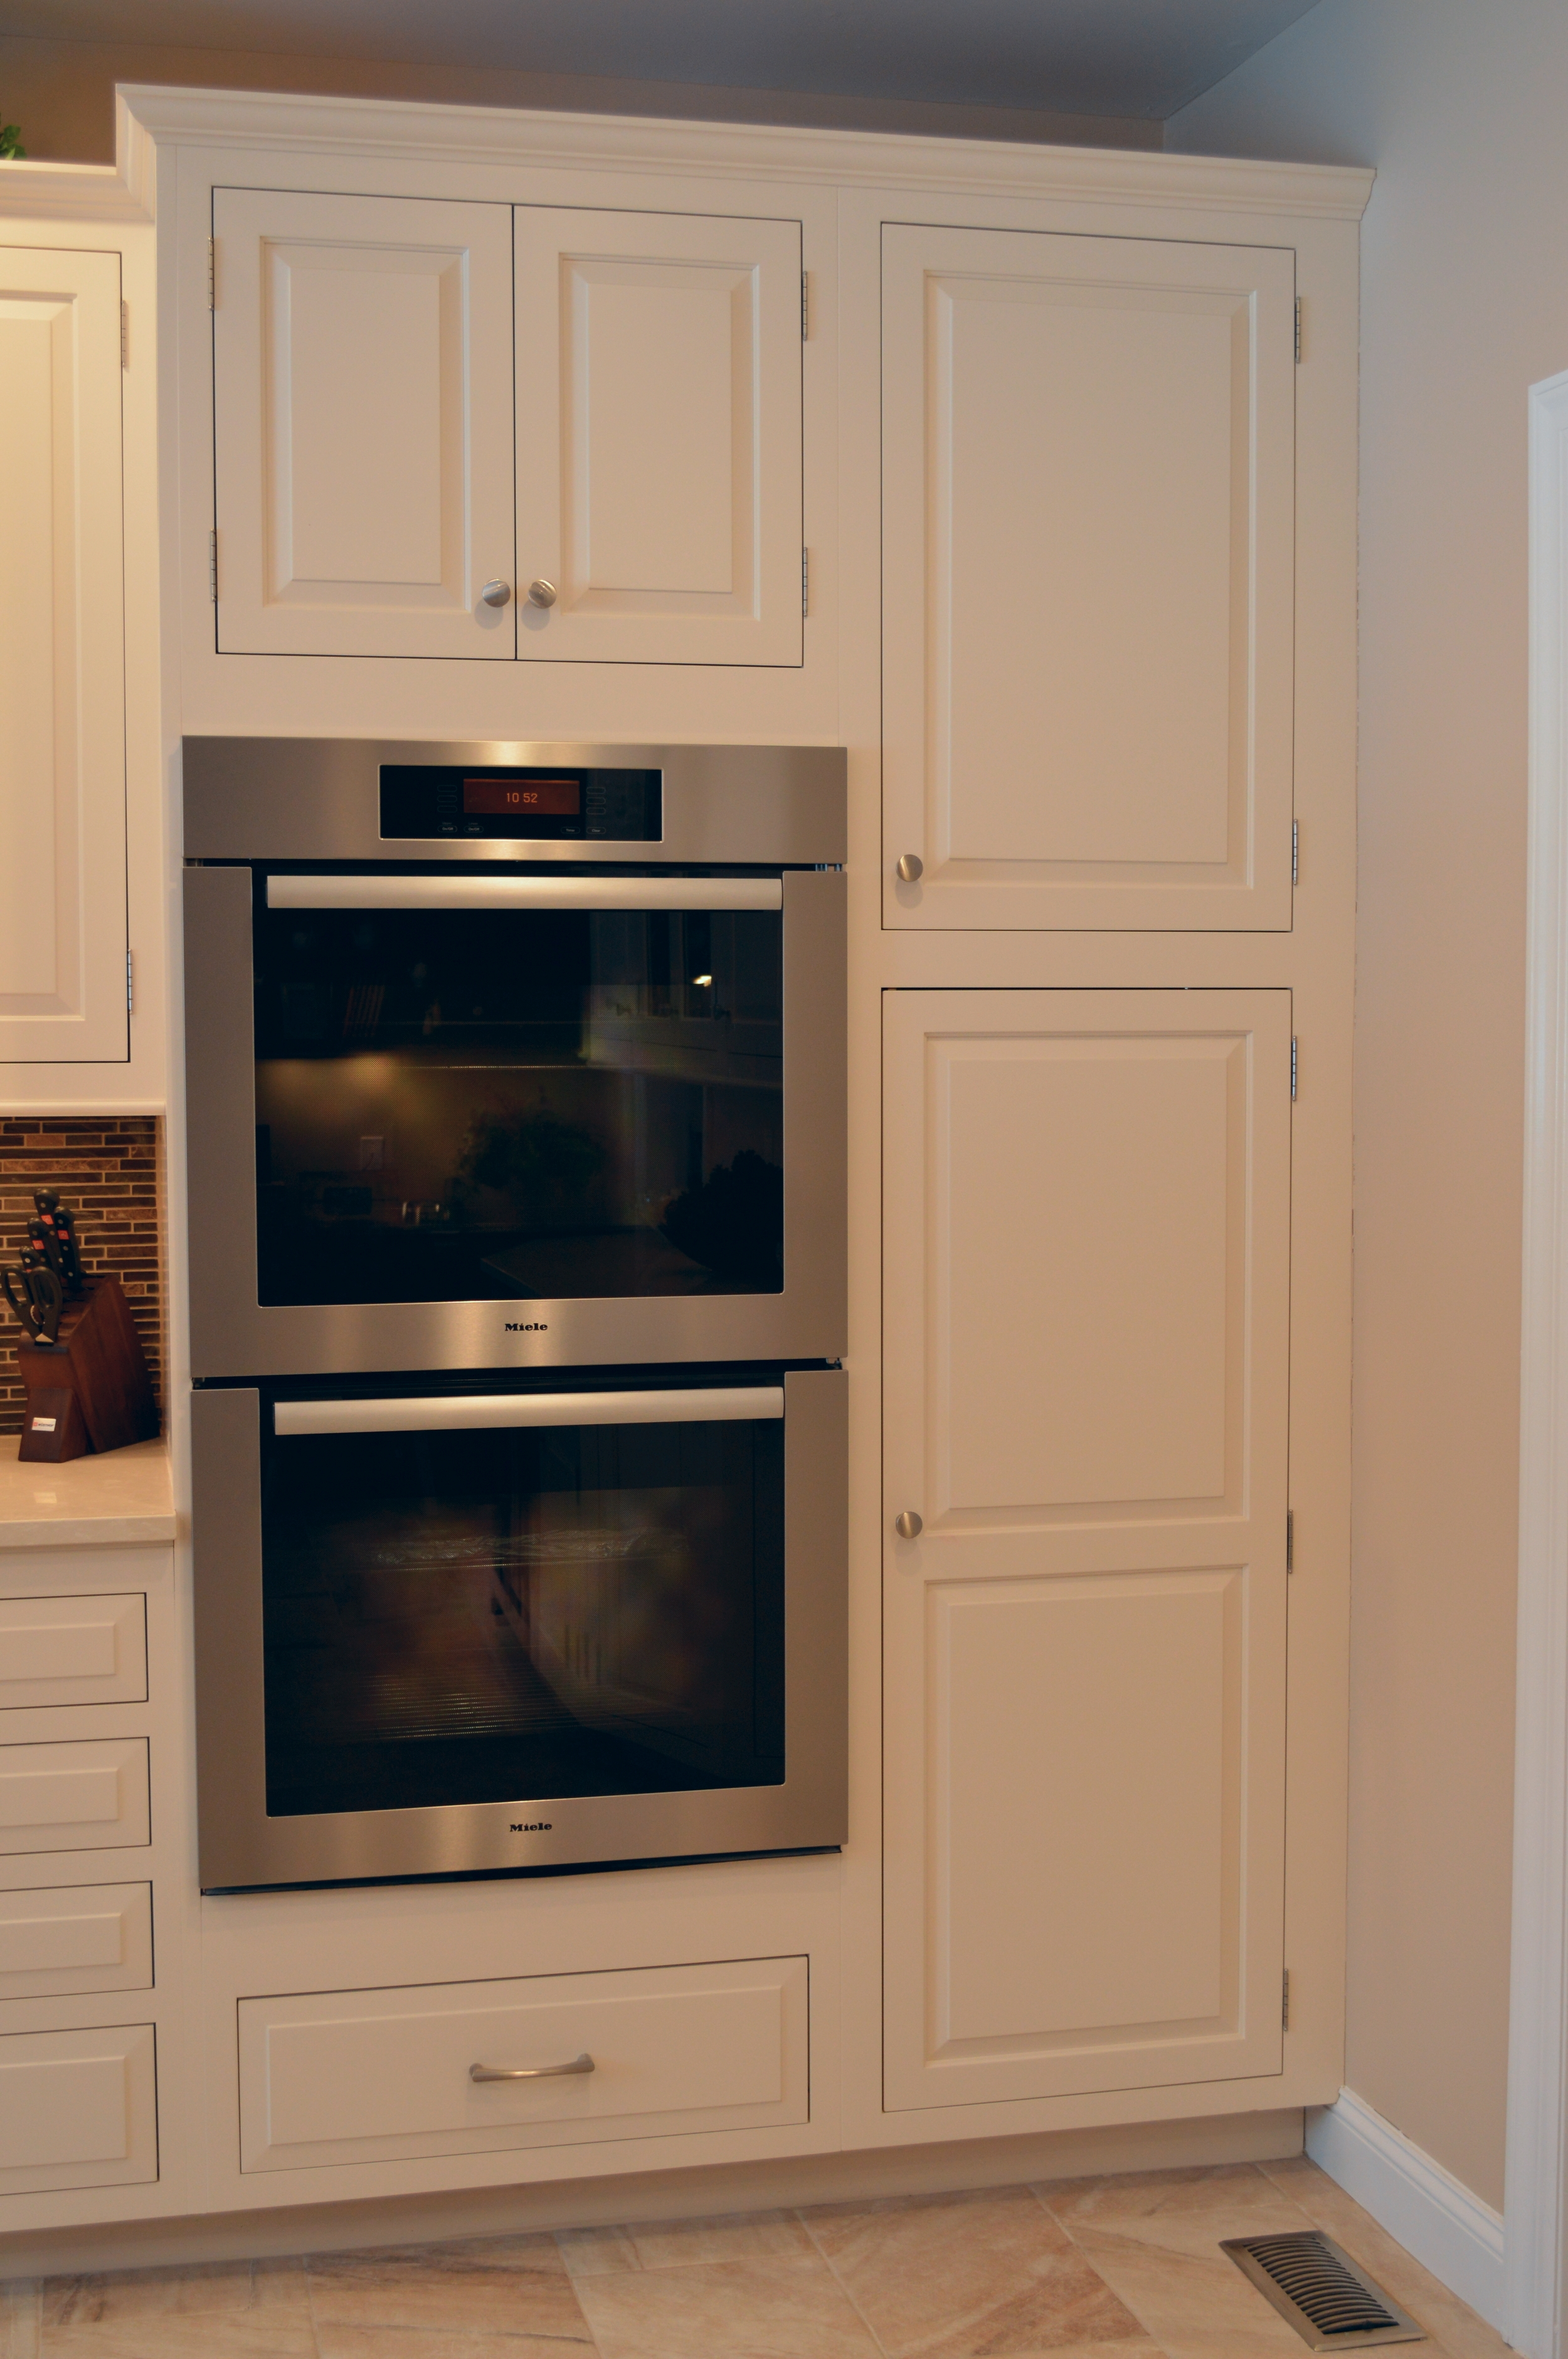 White Kitchen Cabinets - Built in Stainless Steel Double Oven